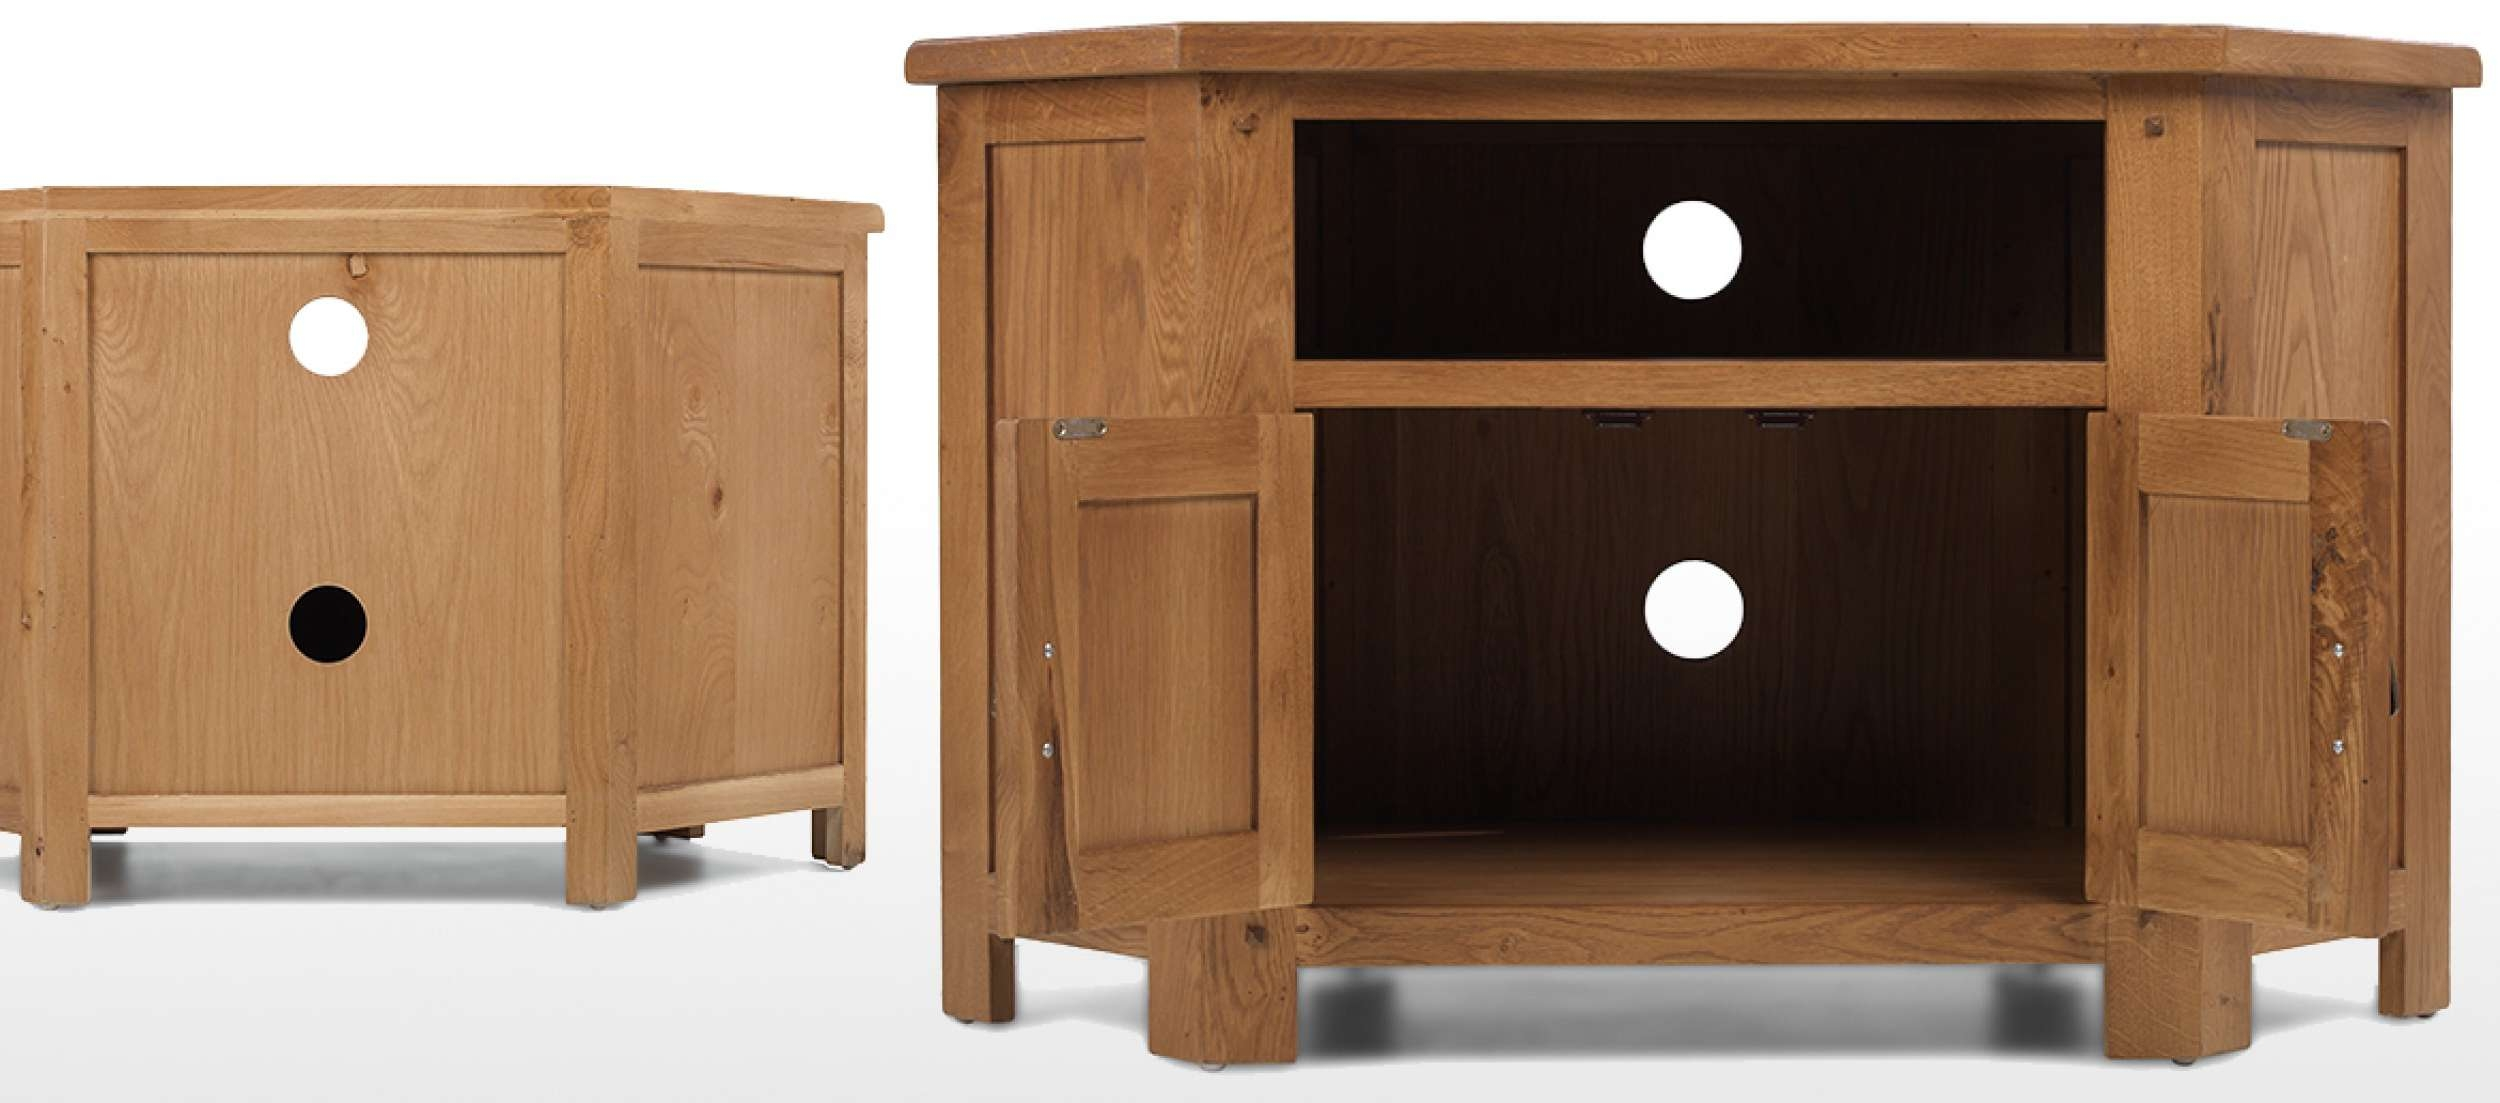 Rustic Oak Corner Tv Cabinet | Quercus Living Within Rustic Oak Tv Stands (View 10 of 15)